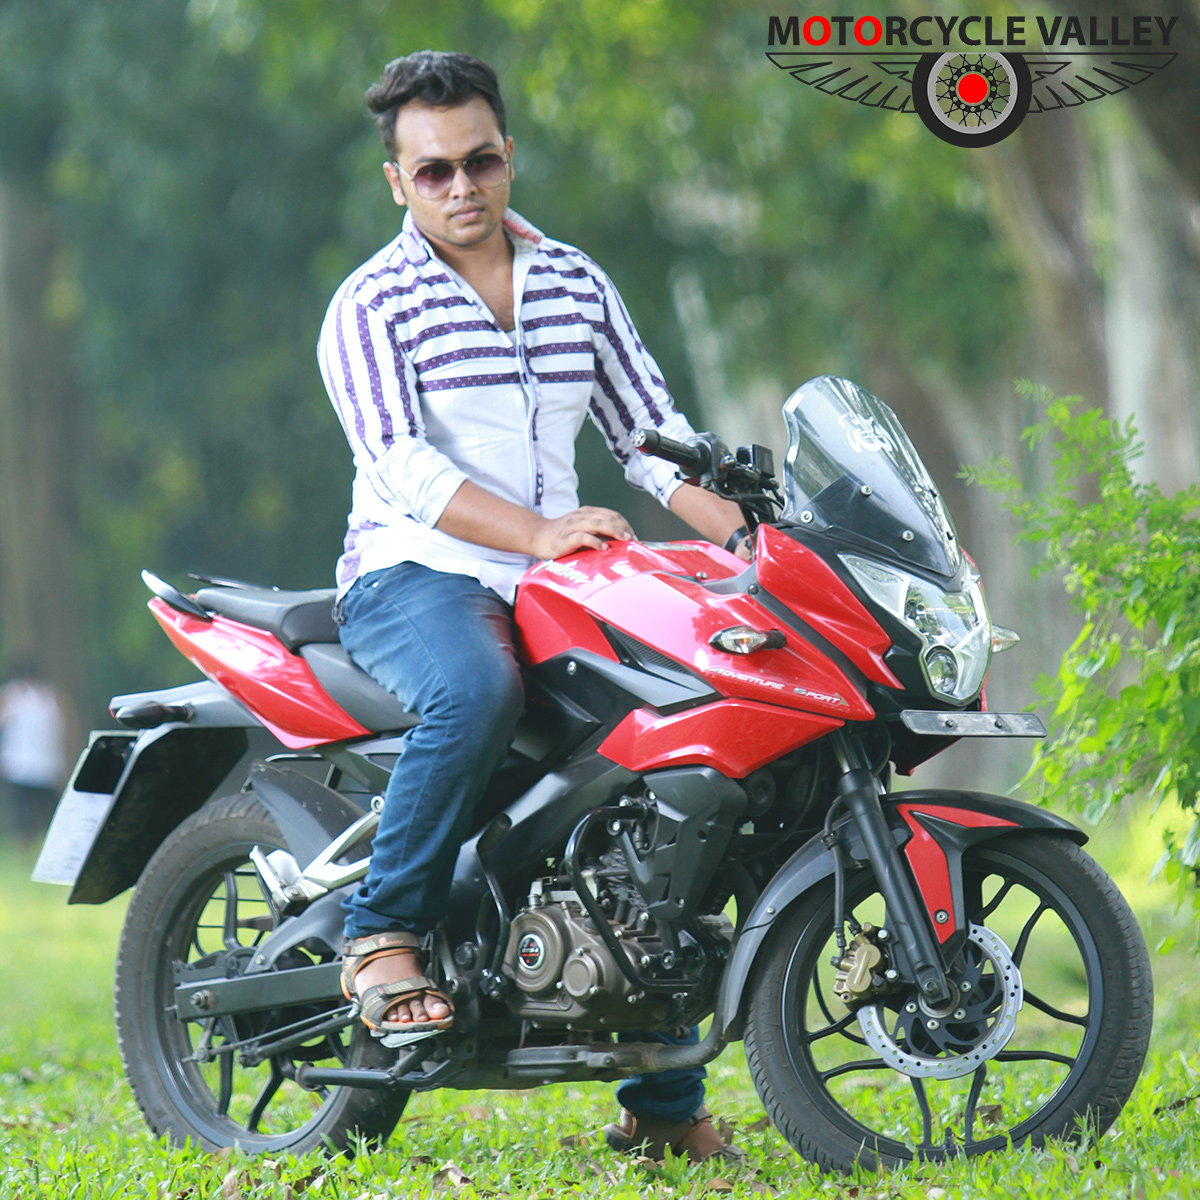 Bajaj Pulsar AS 150 user review by Akash